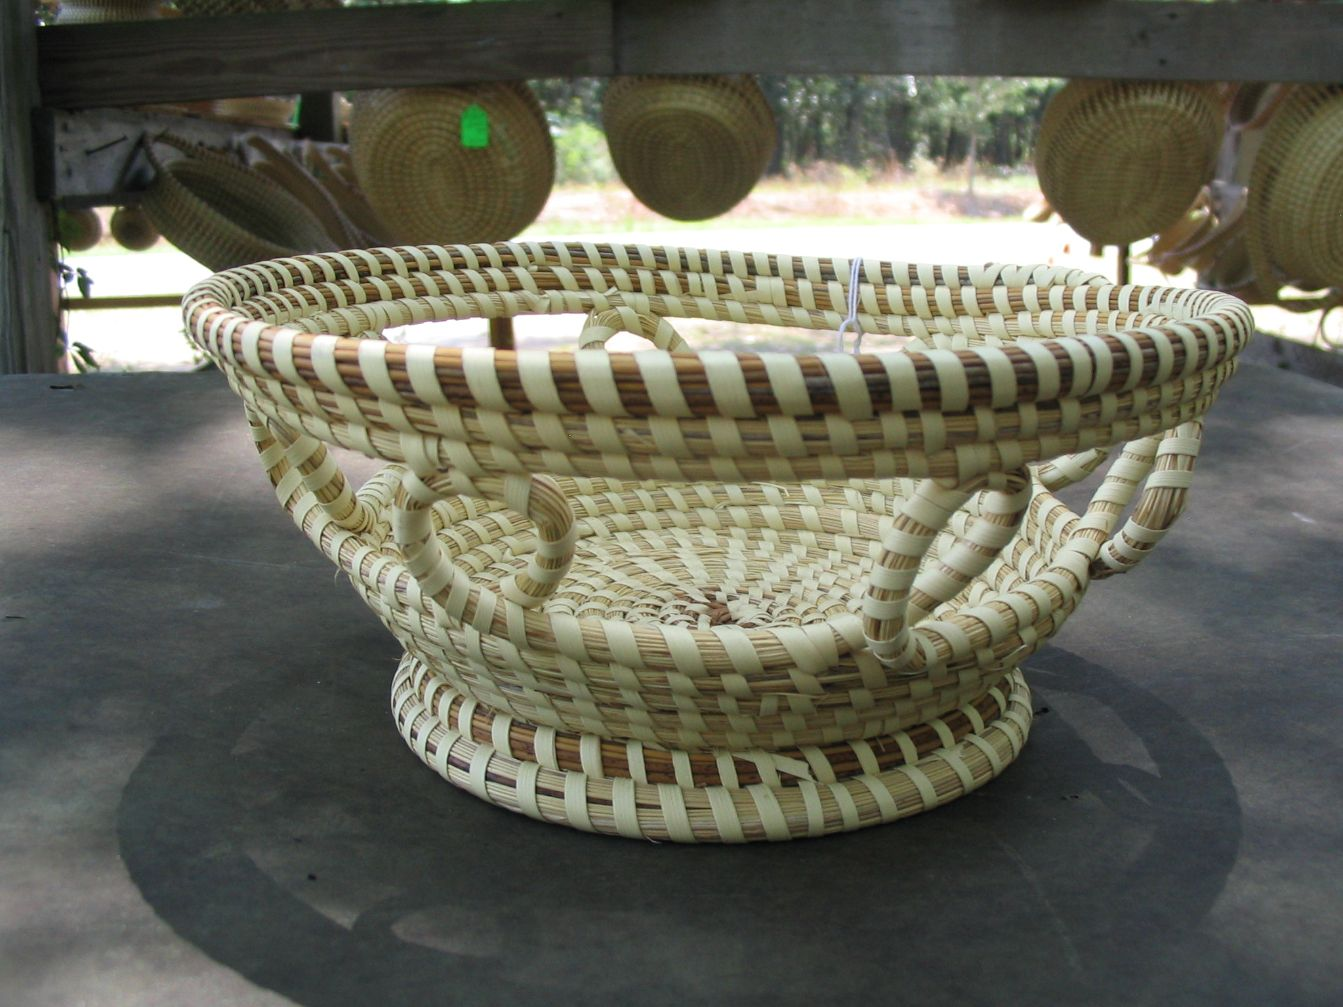 Designer Fruit Basket Sweetgrass Baskets Handwoven Baskets Bread Baskets